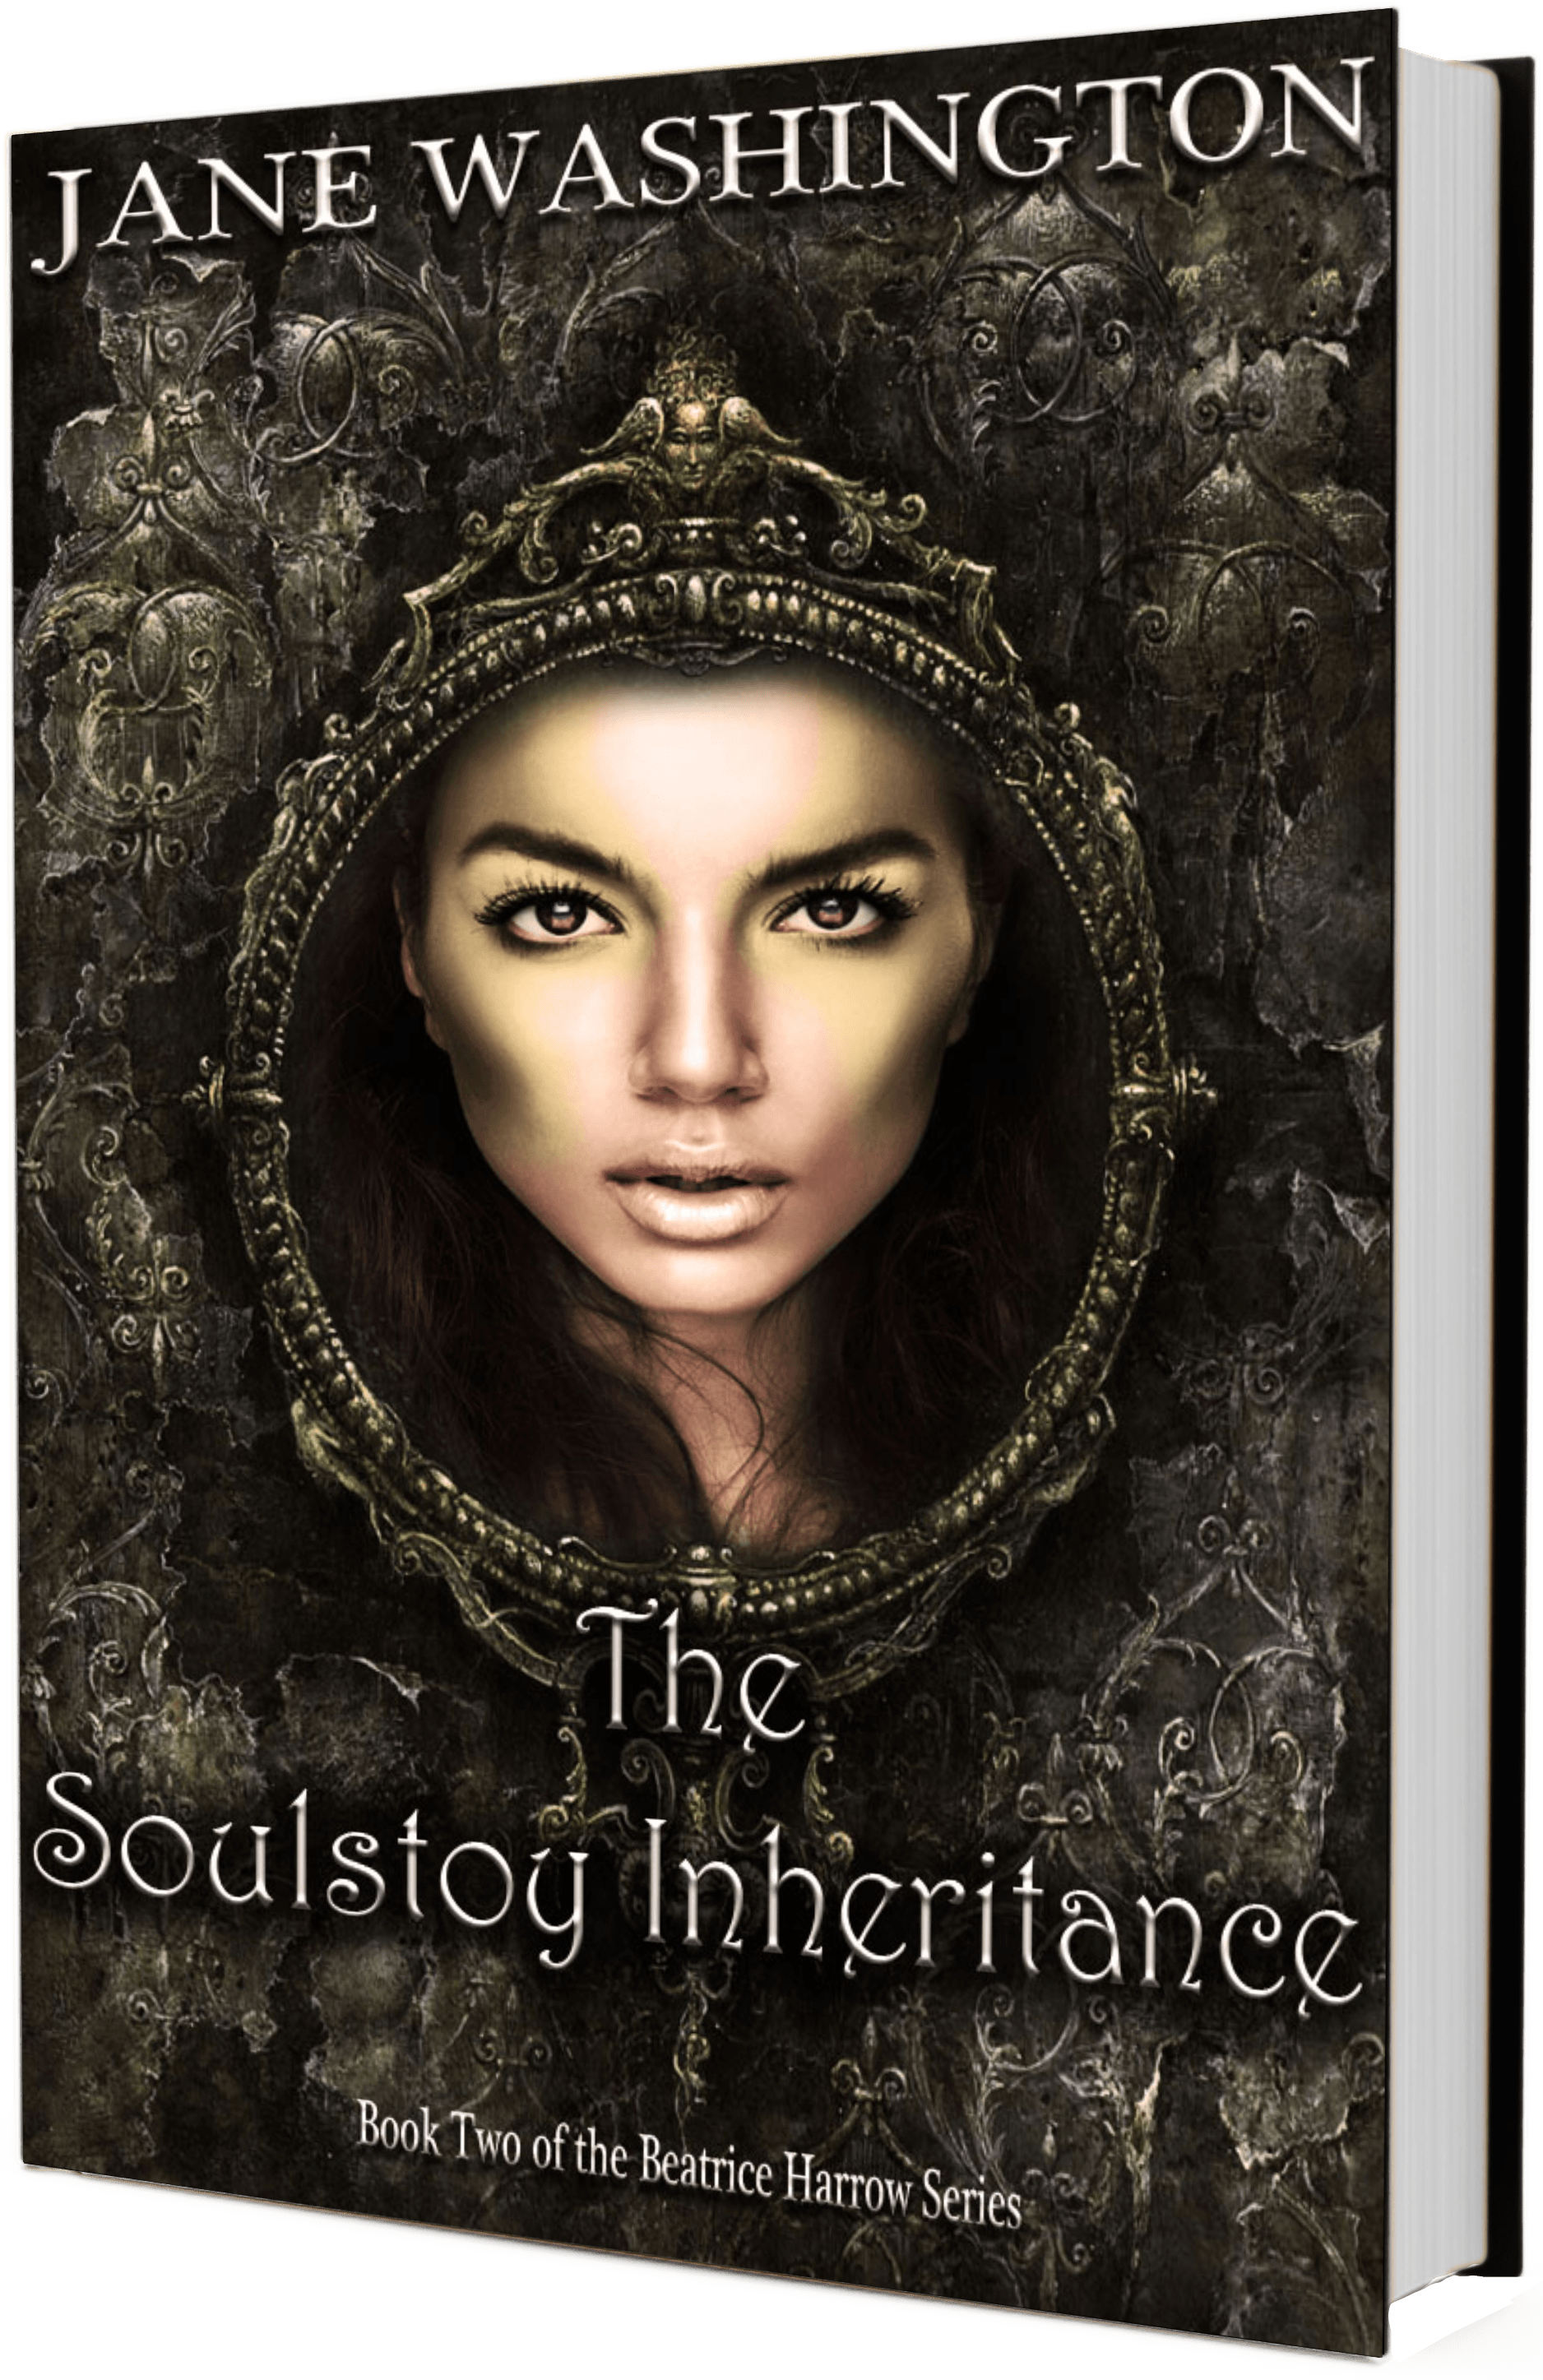 soulstoy inheritance book cover